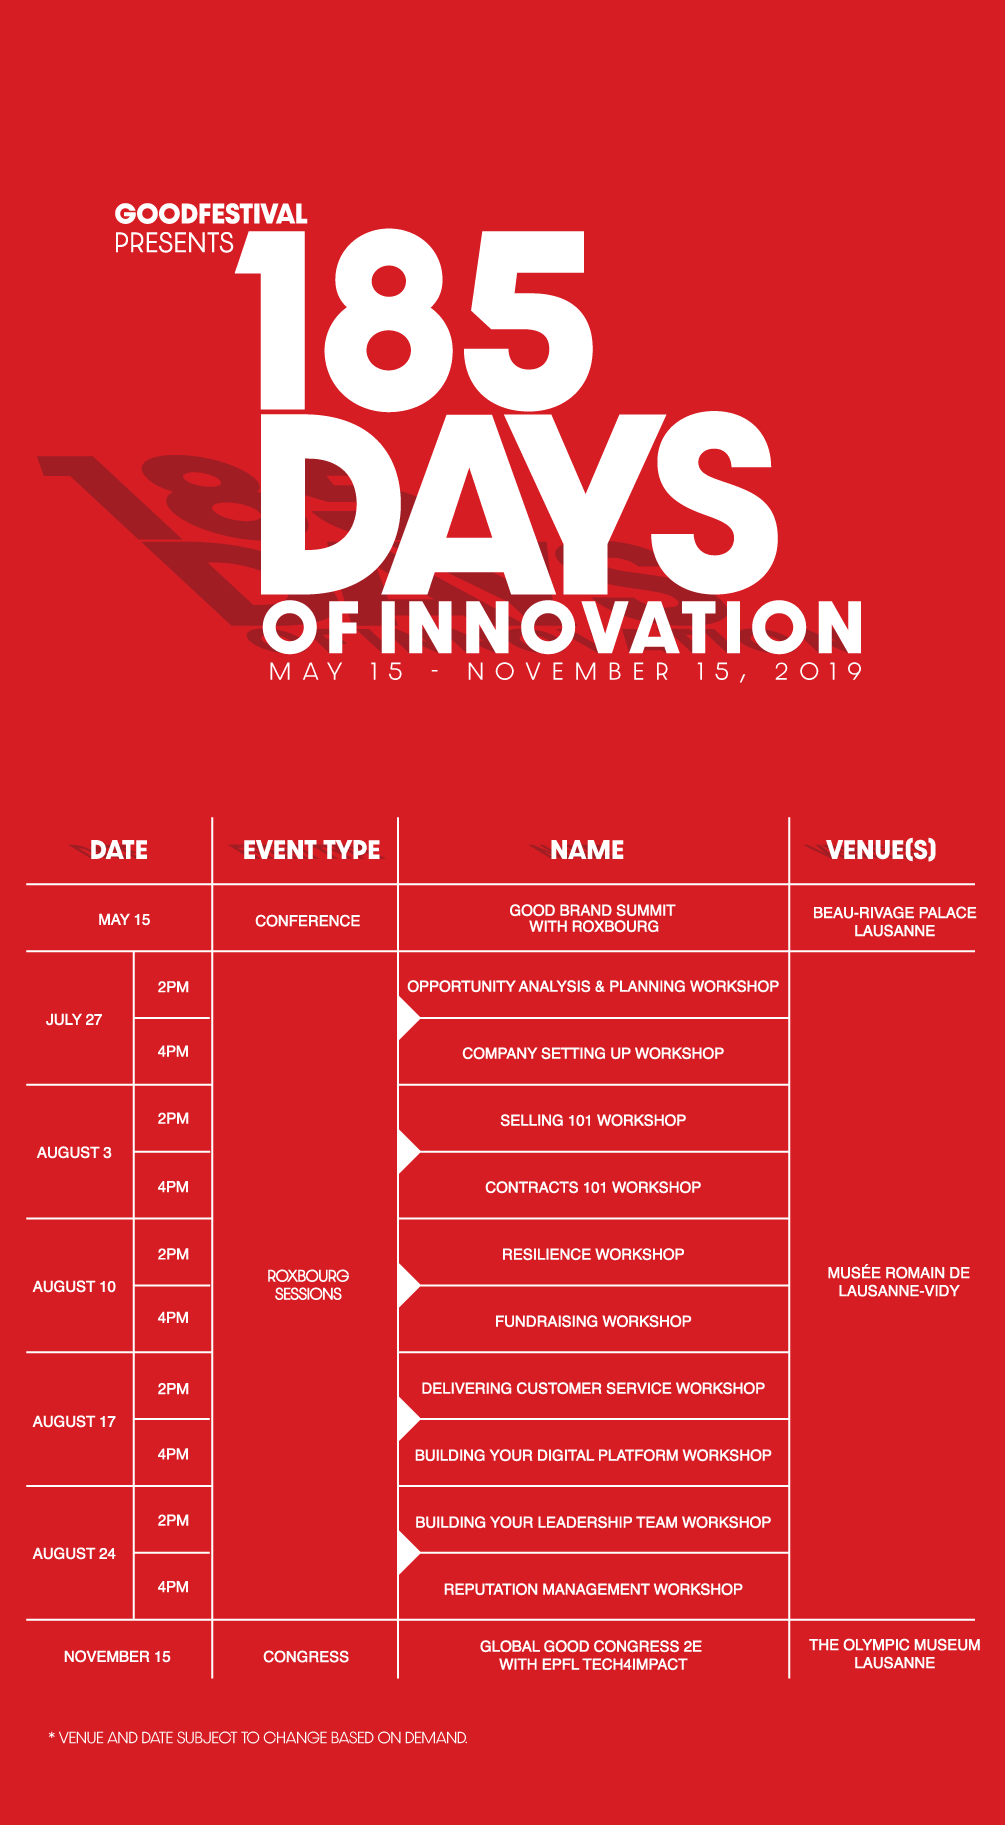 185-Days-of-Innovation_7e-22-07-19_Download.png